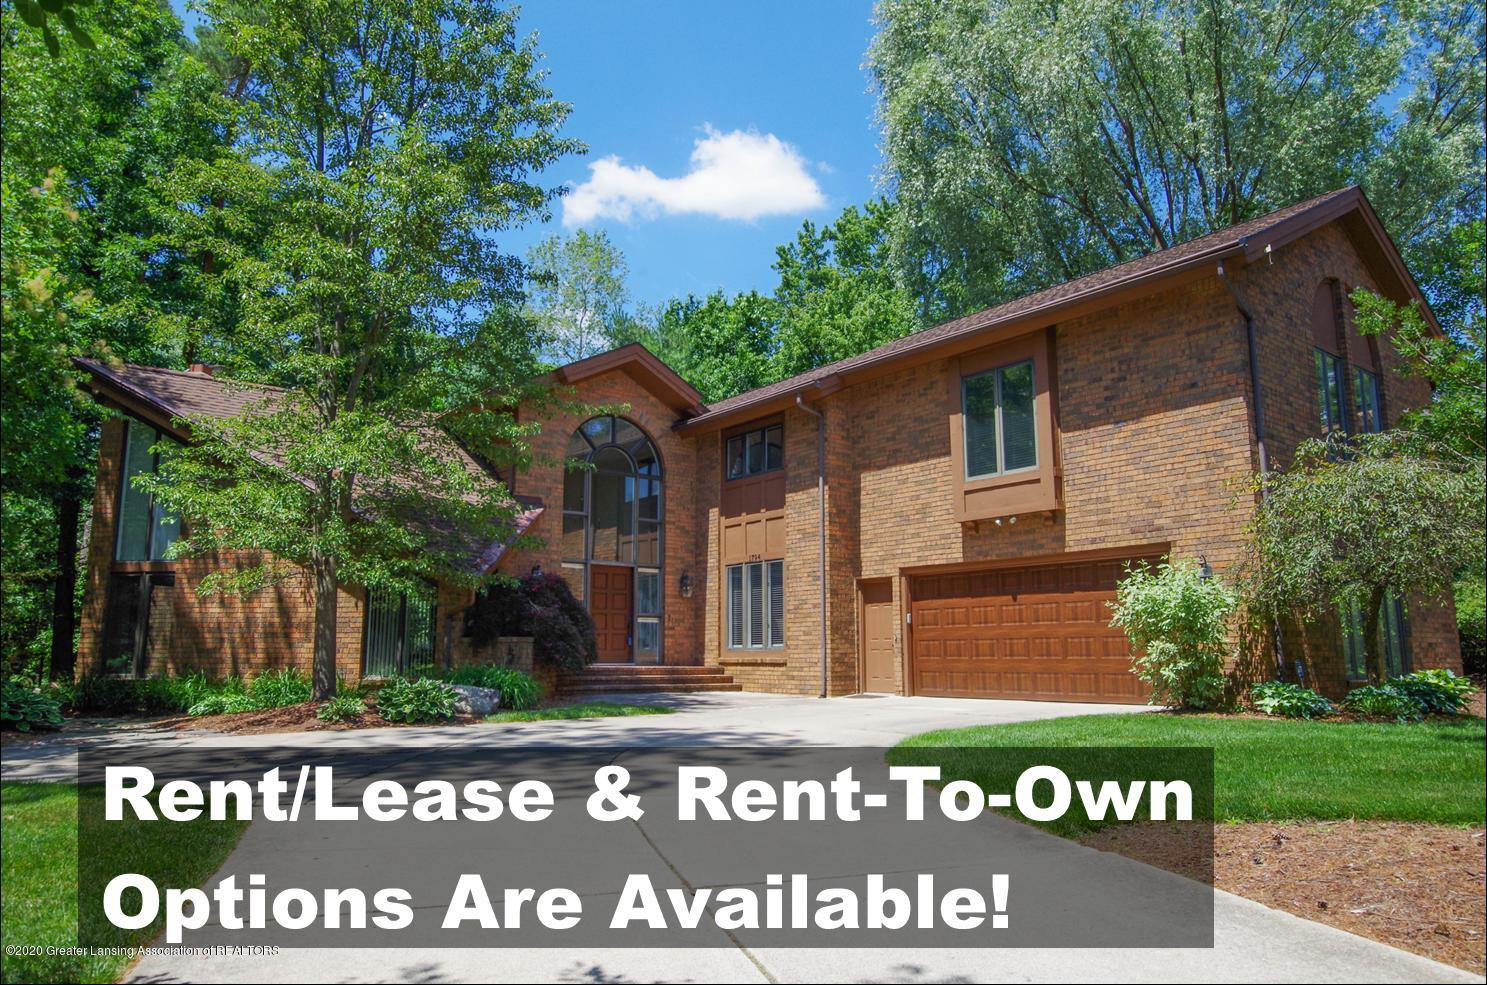 1794 Sashabaw Dr - Rent to Own Option Available Pic - 2